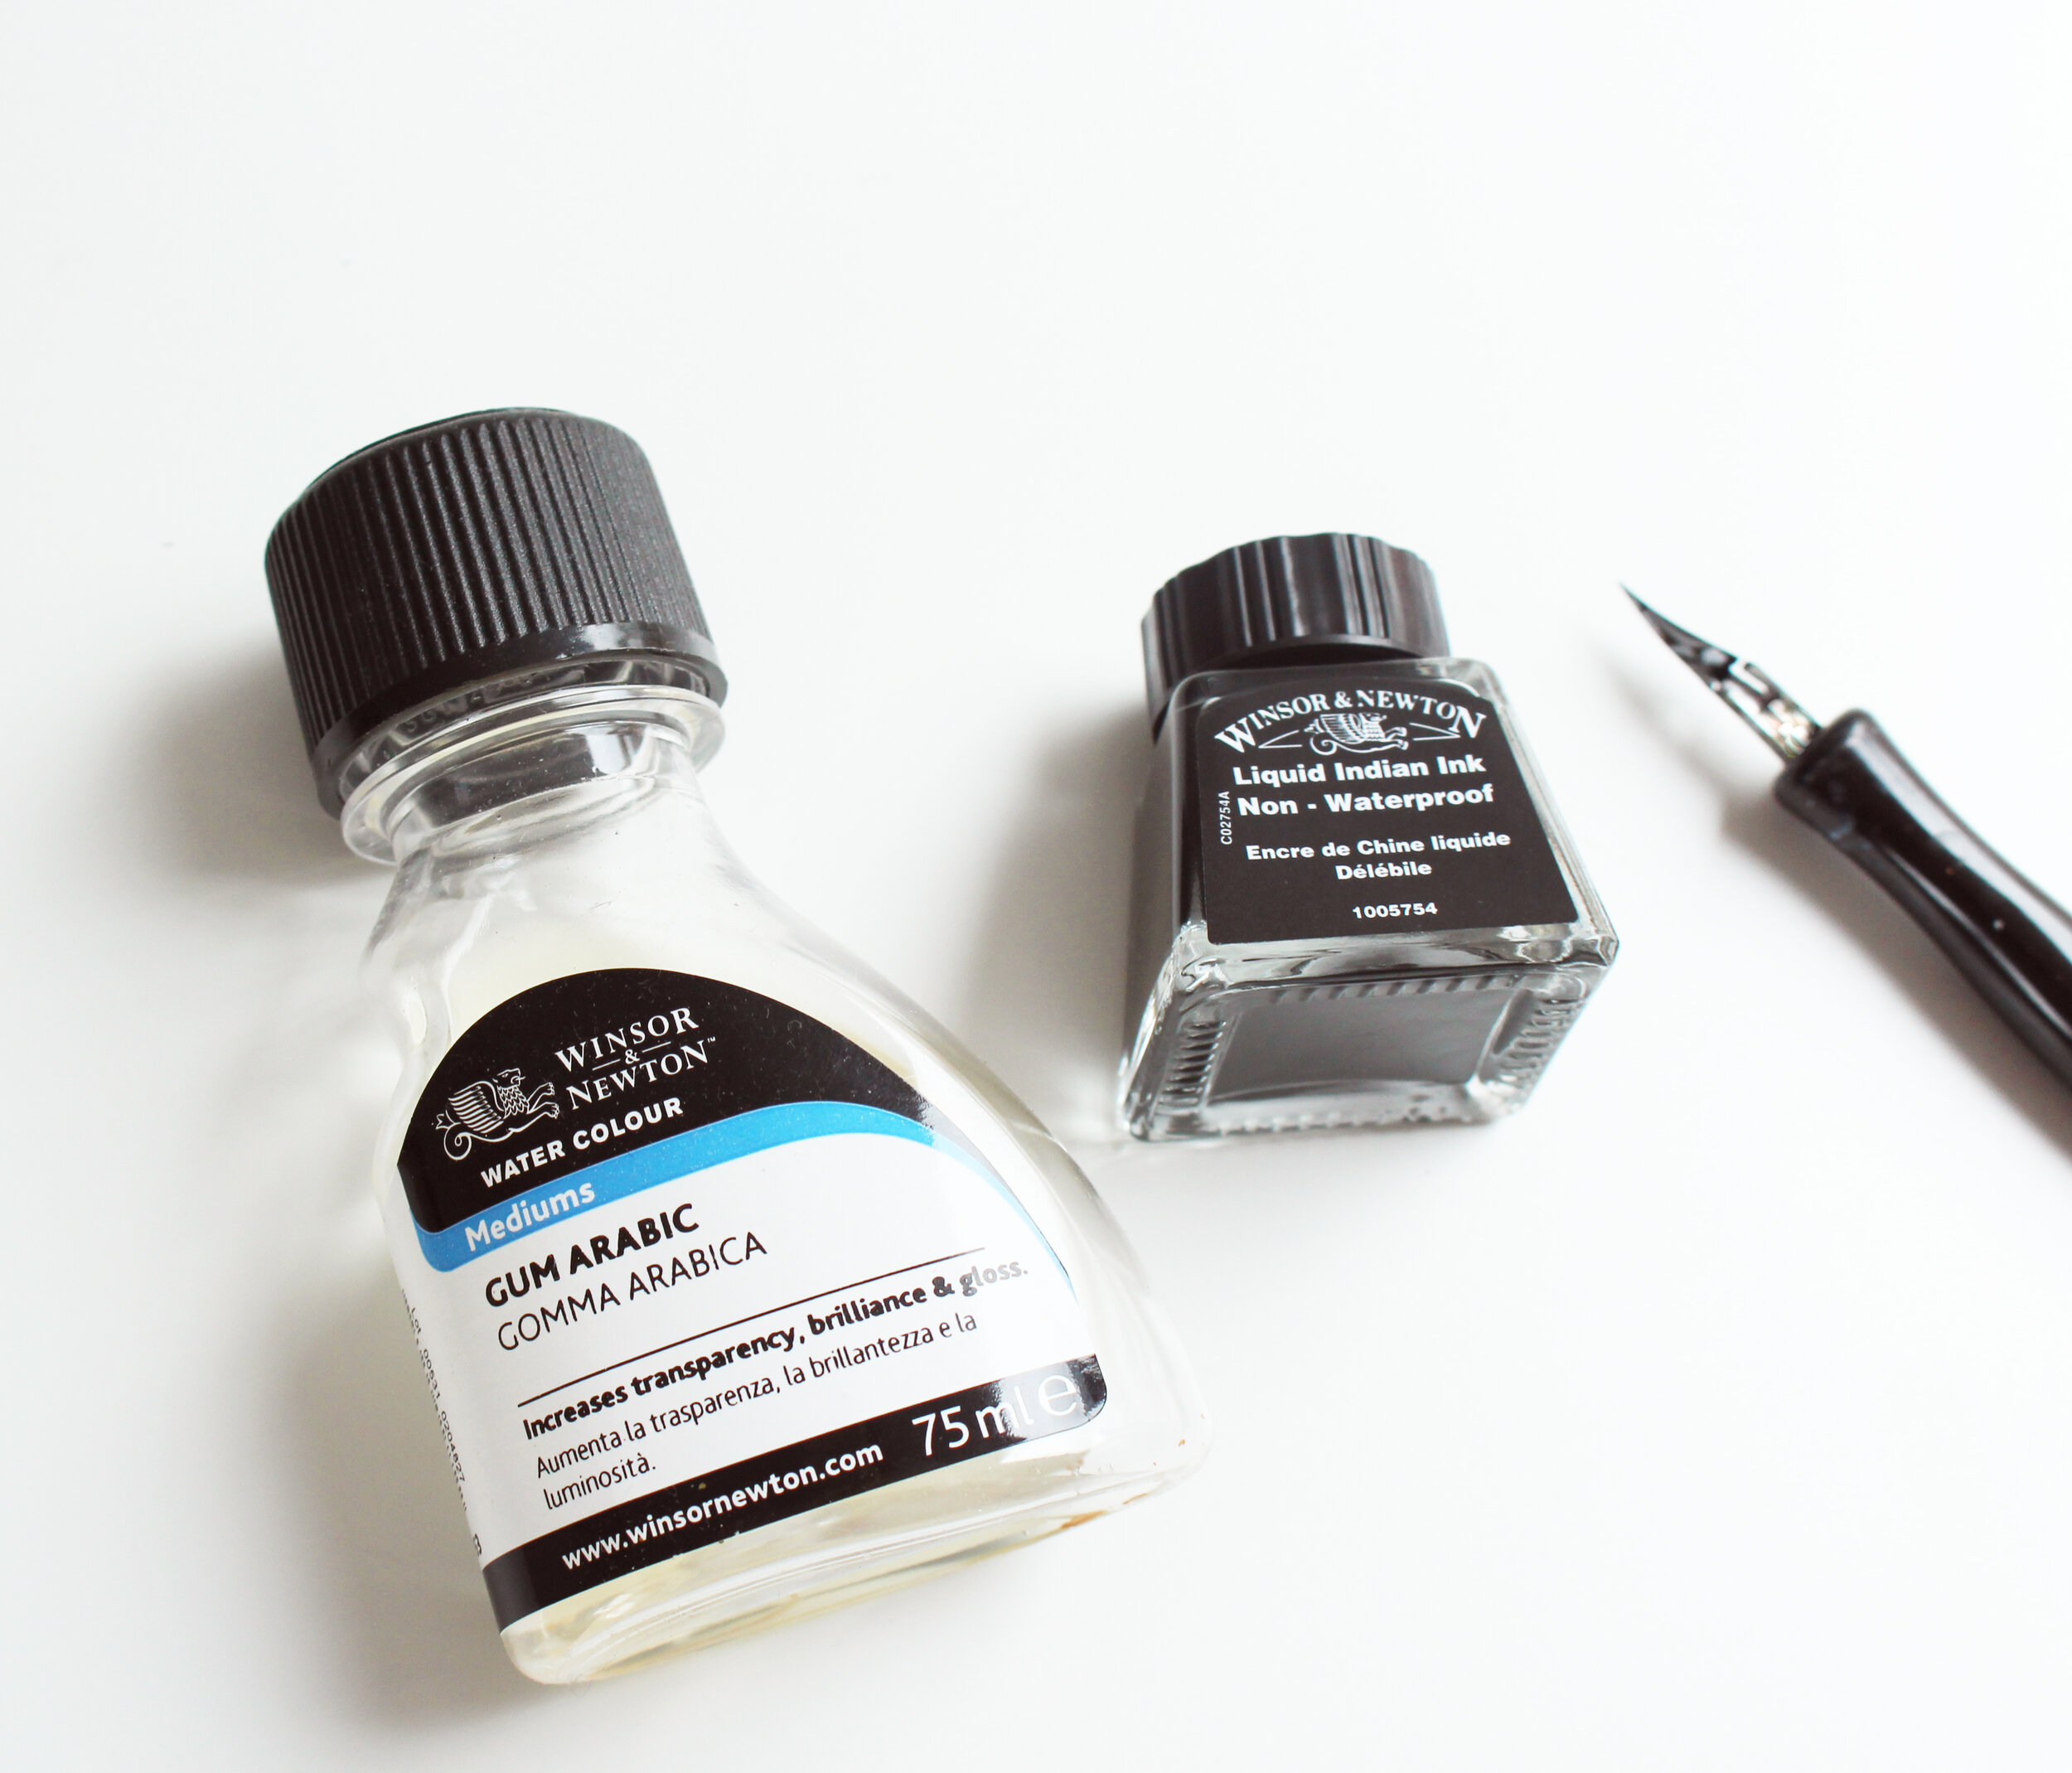 calligraphy supplies recommendations